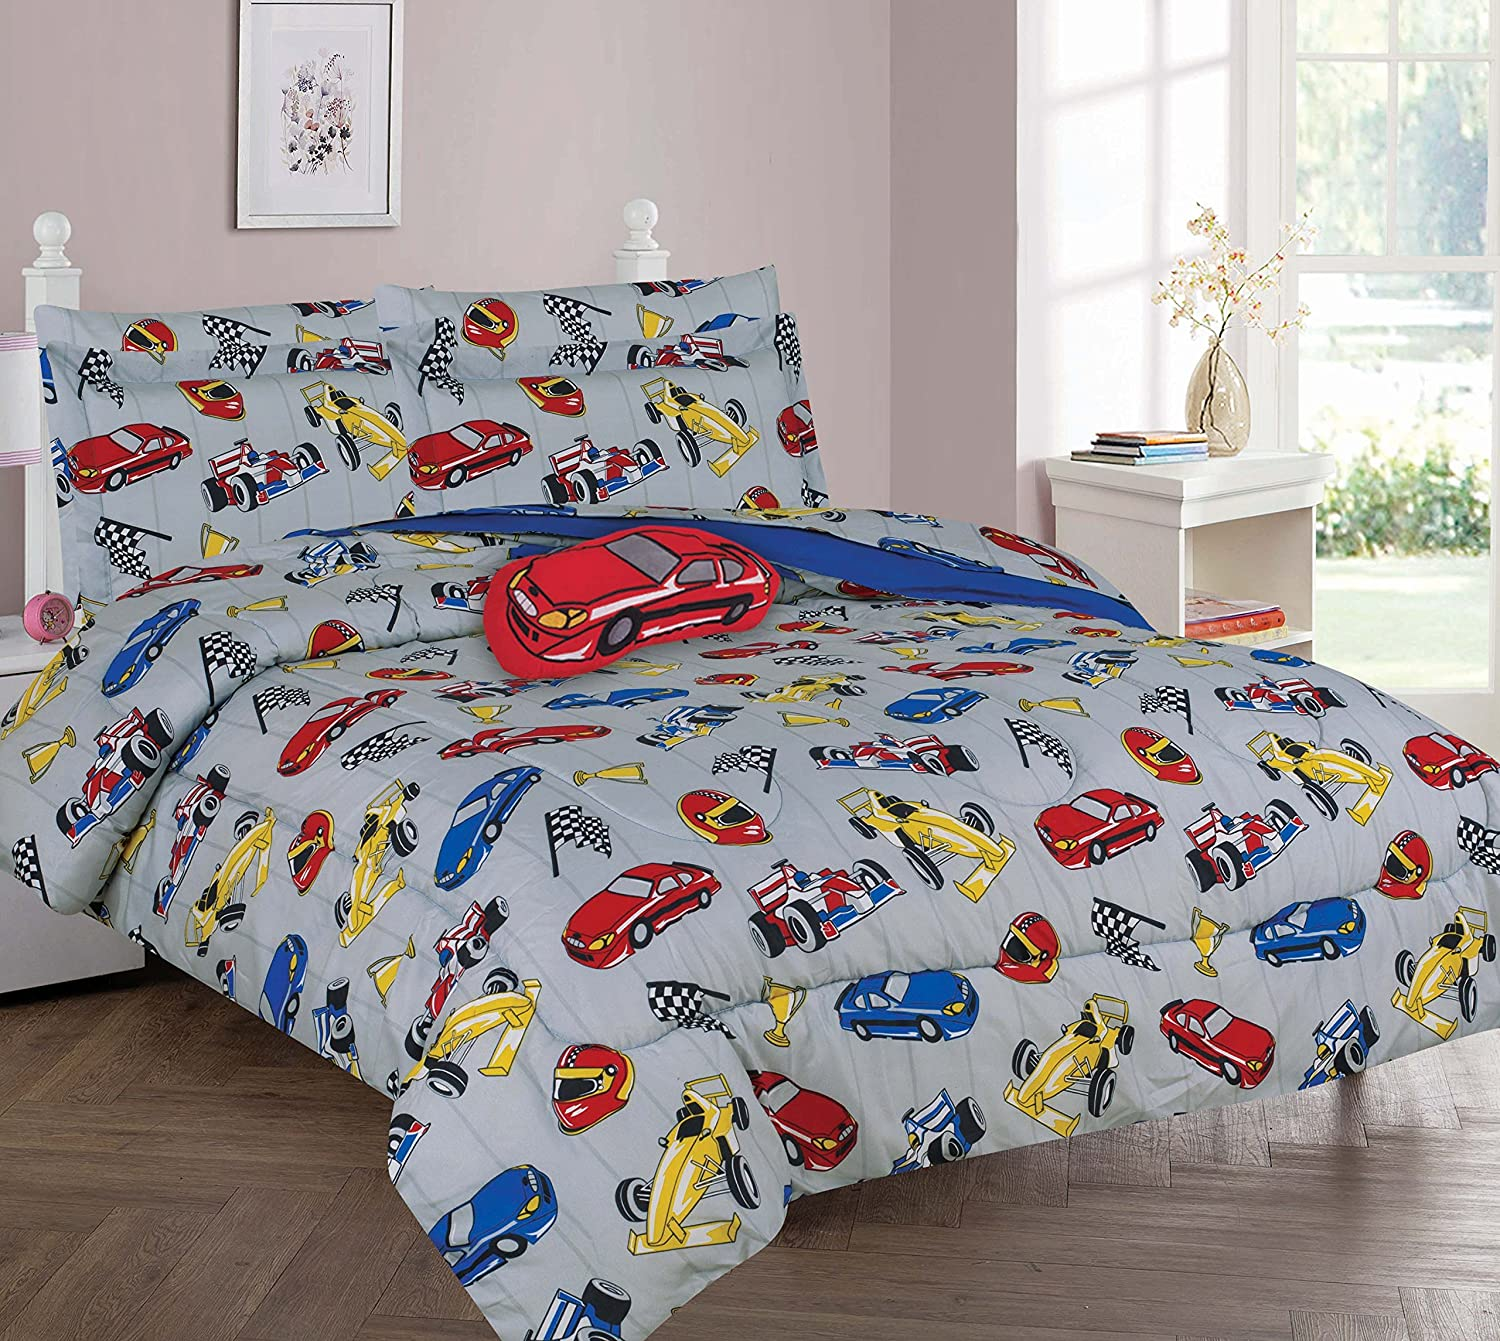 Twin & Full 6 Pcs or 8 Pcs Comforter/ Coverlet / Bed in Bag Set with Toy (Full 8 pcs, Car Race)